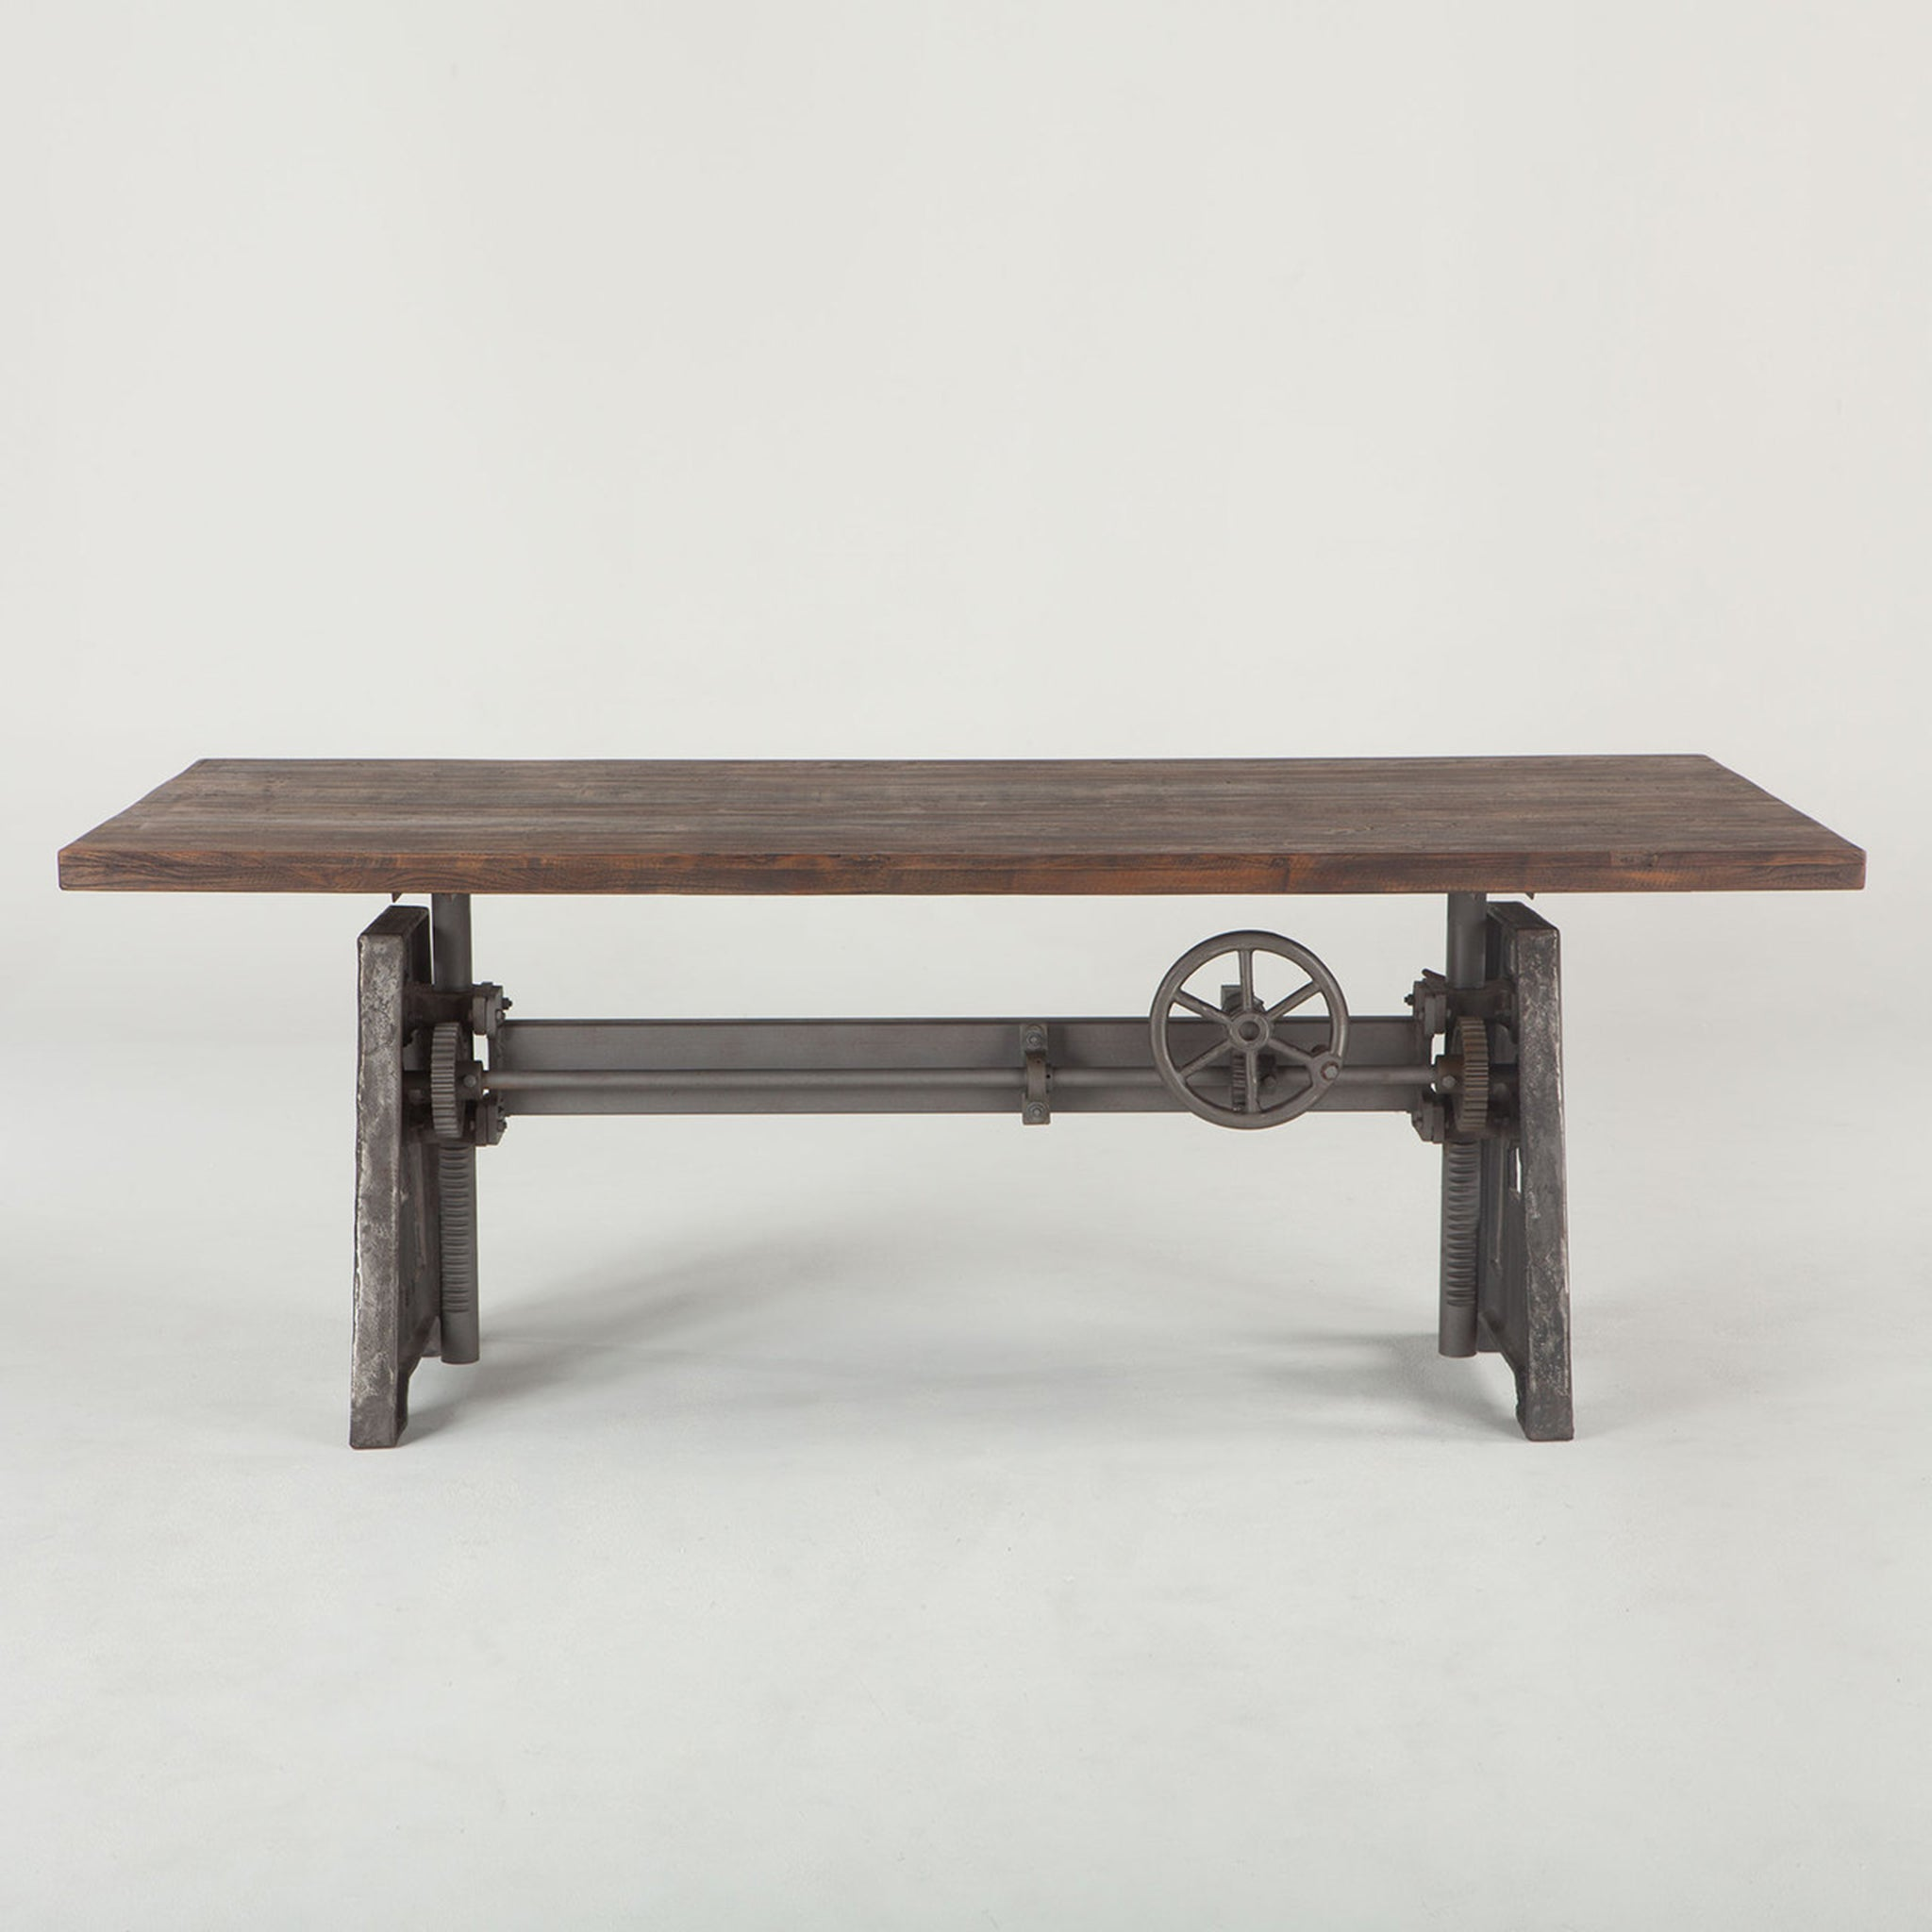 Industrial Loft Wood Dining Table 83""